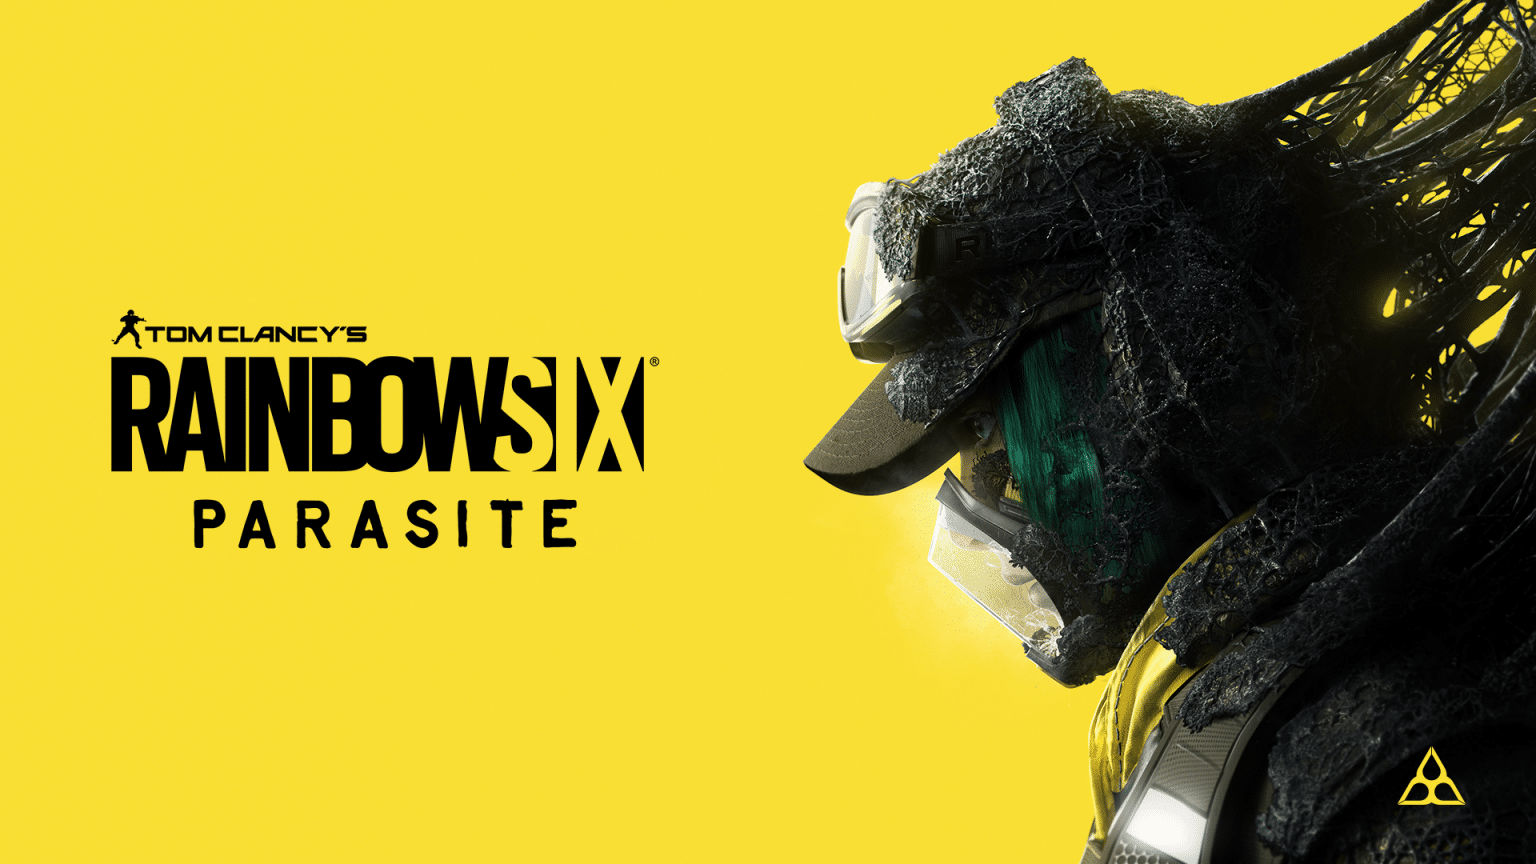 Rumored 'Rainbow Six Parasite' Is Placeholder Title, Official Name Coming Soon